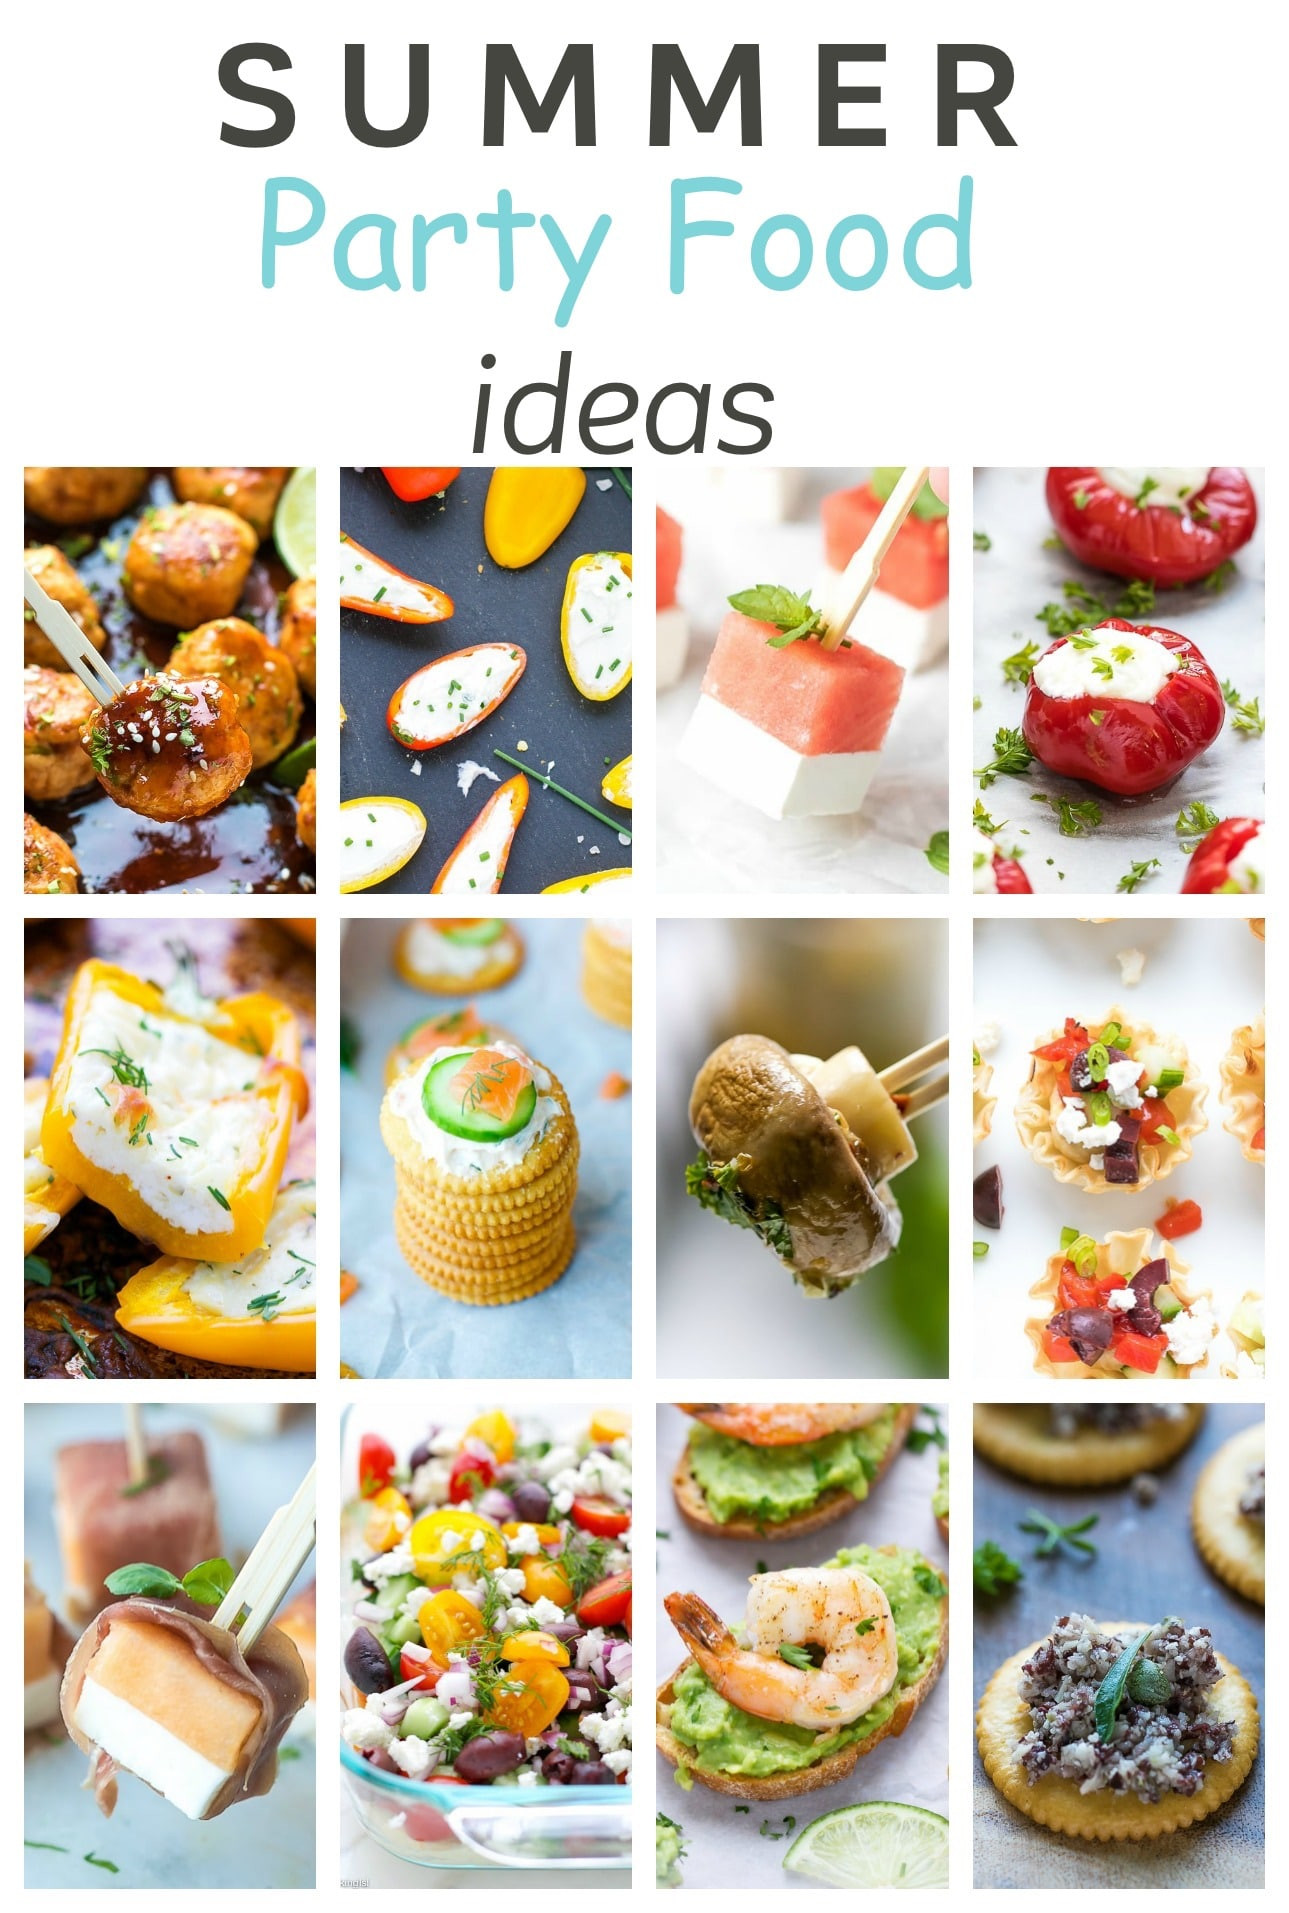 Summer Food Party Ideas  Easy Summer Party Food Ideas Cooking LSL